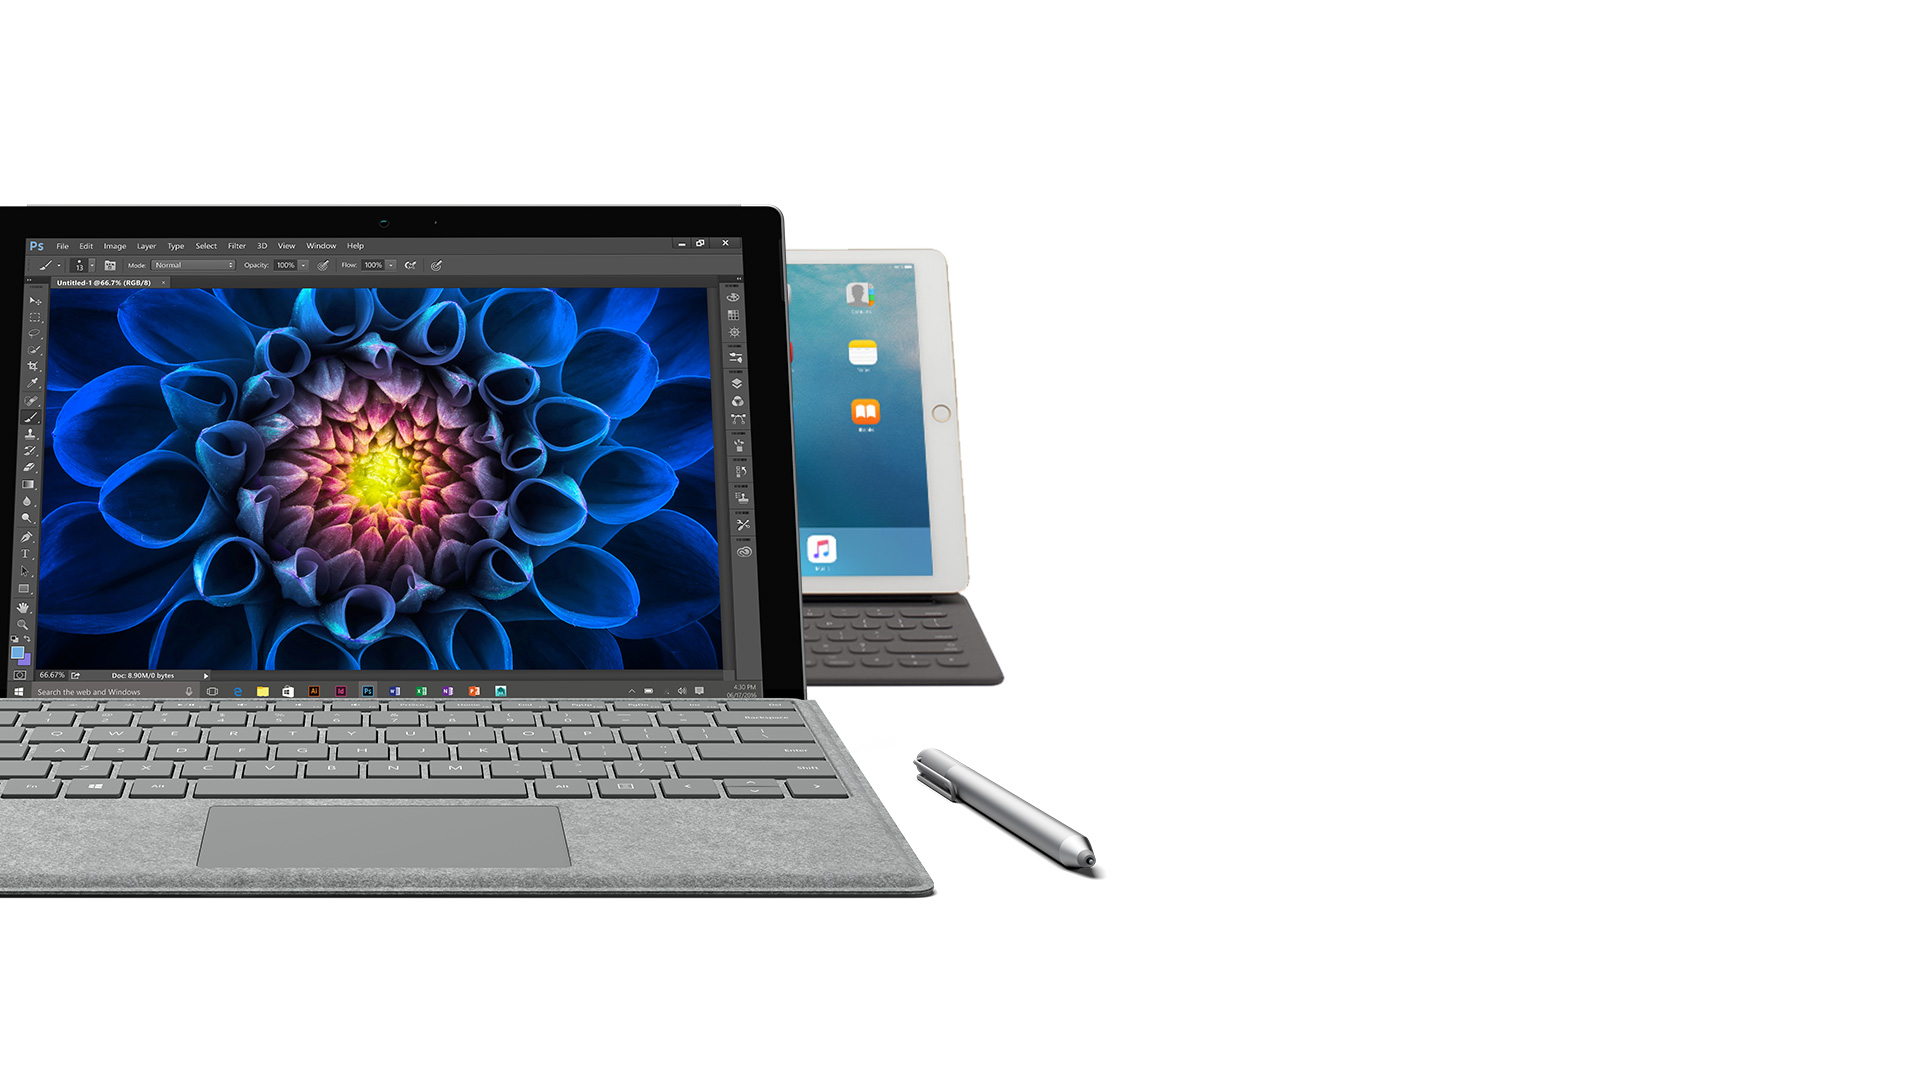 Surface Pro 4 facing front with Surface Pen next to it with an Ipad Pro peeking out from behind it